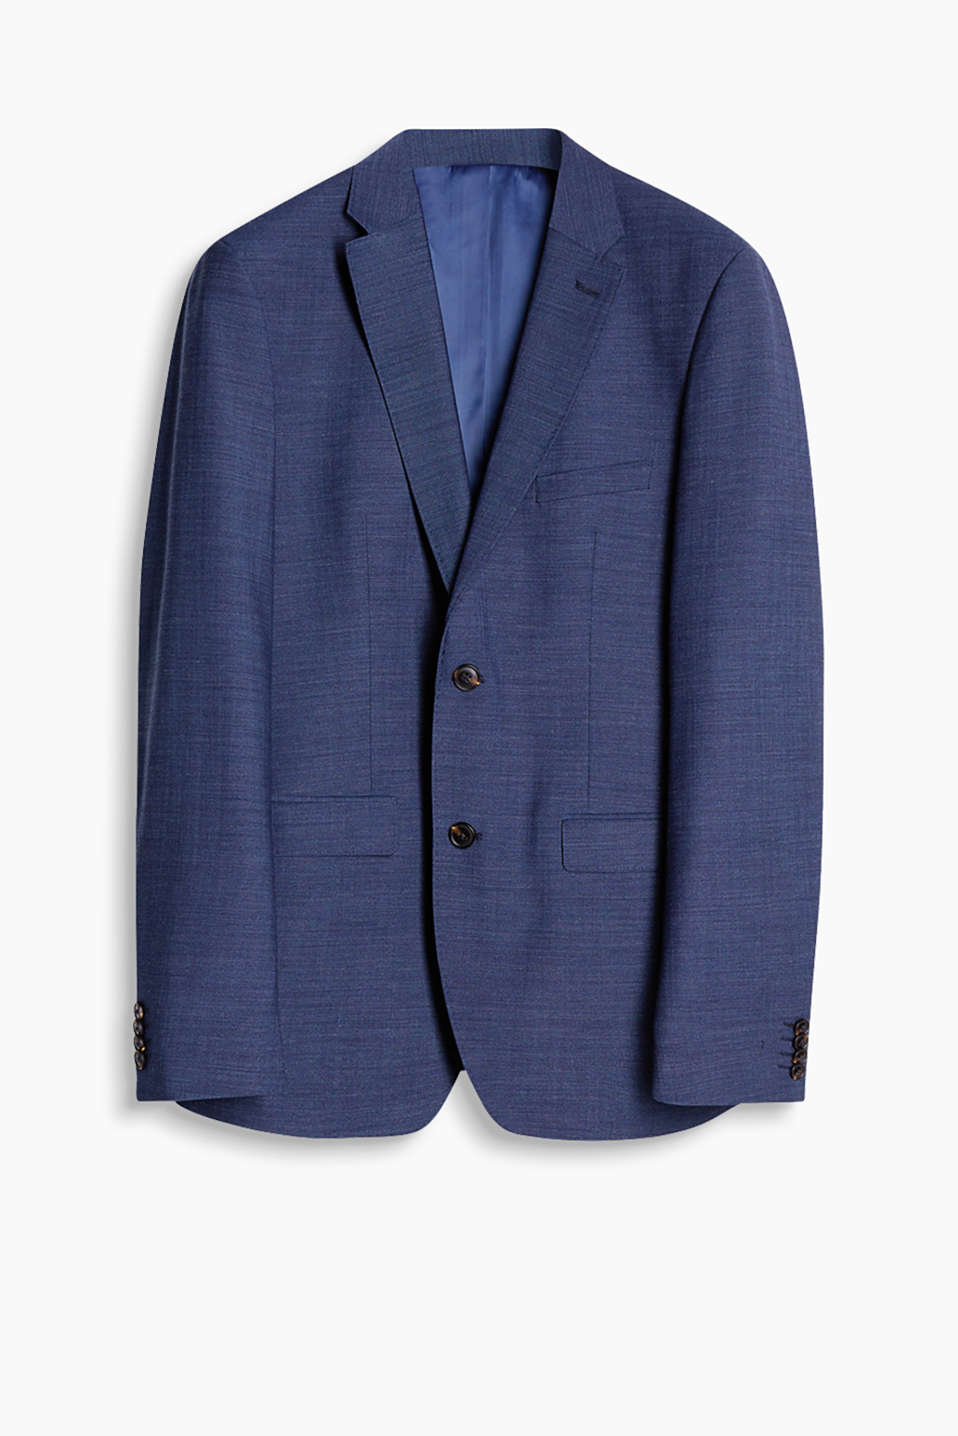 Active Suit: crease resistant tailored jacket in a blended wool with a high percentage of stretch